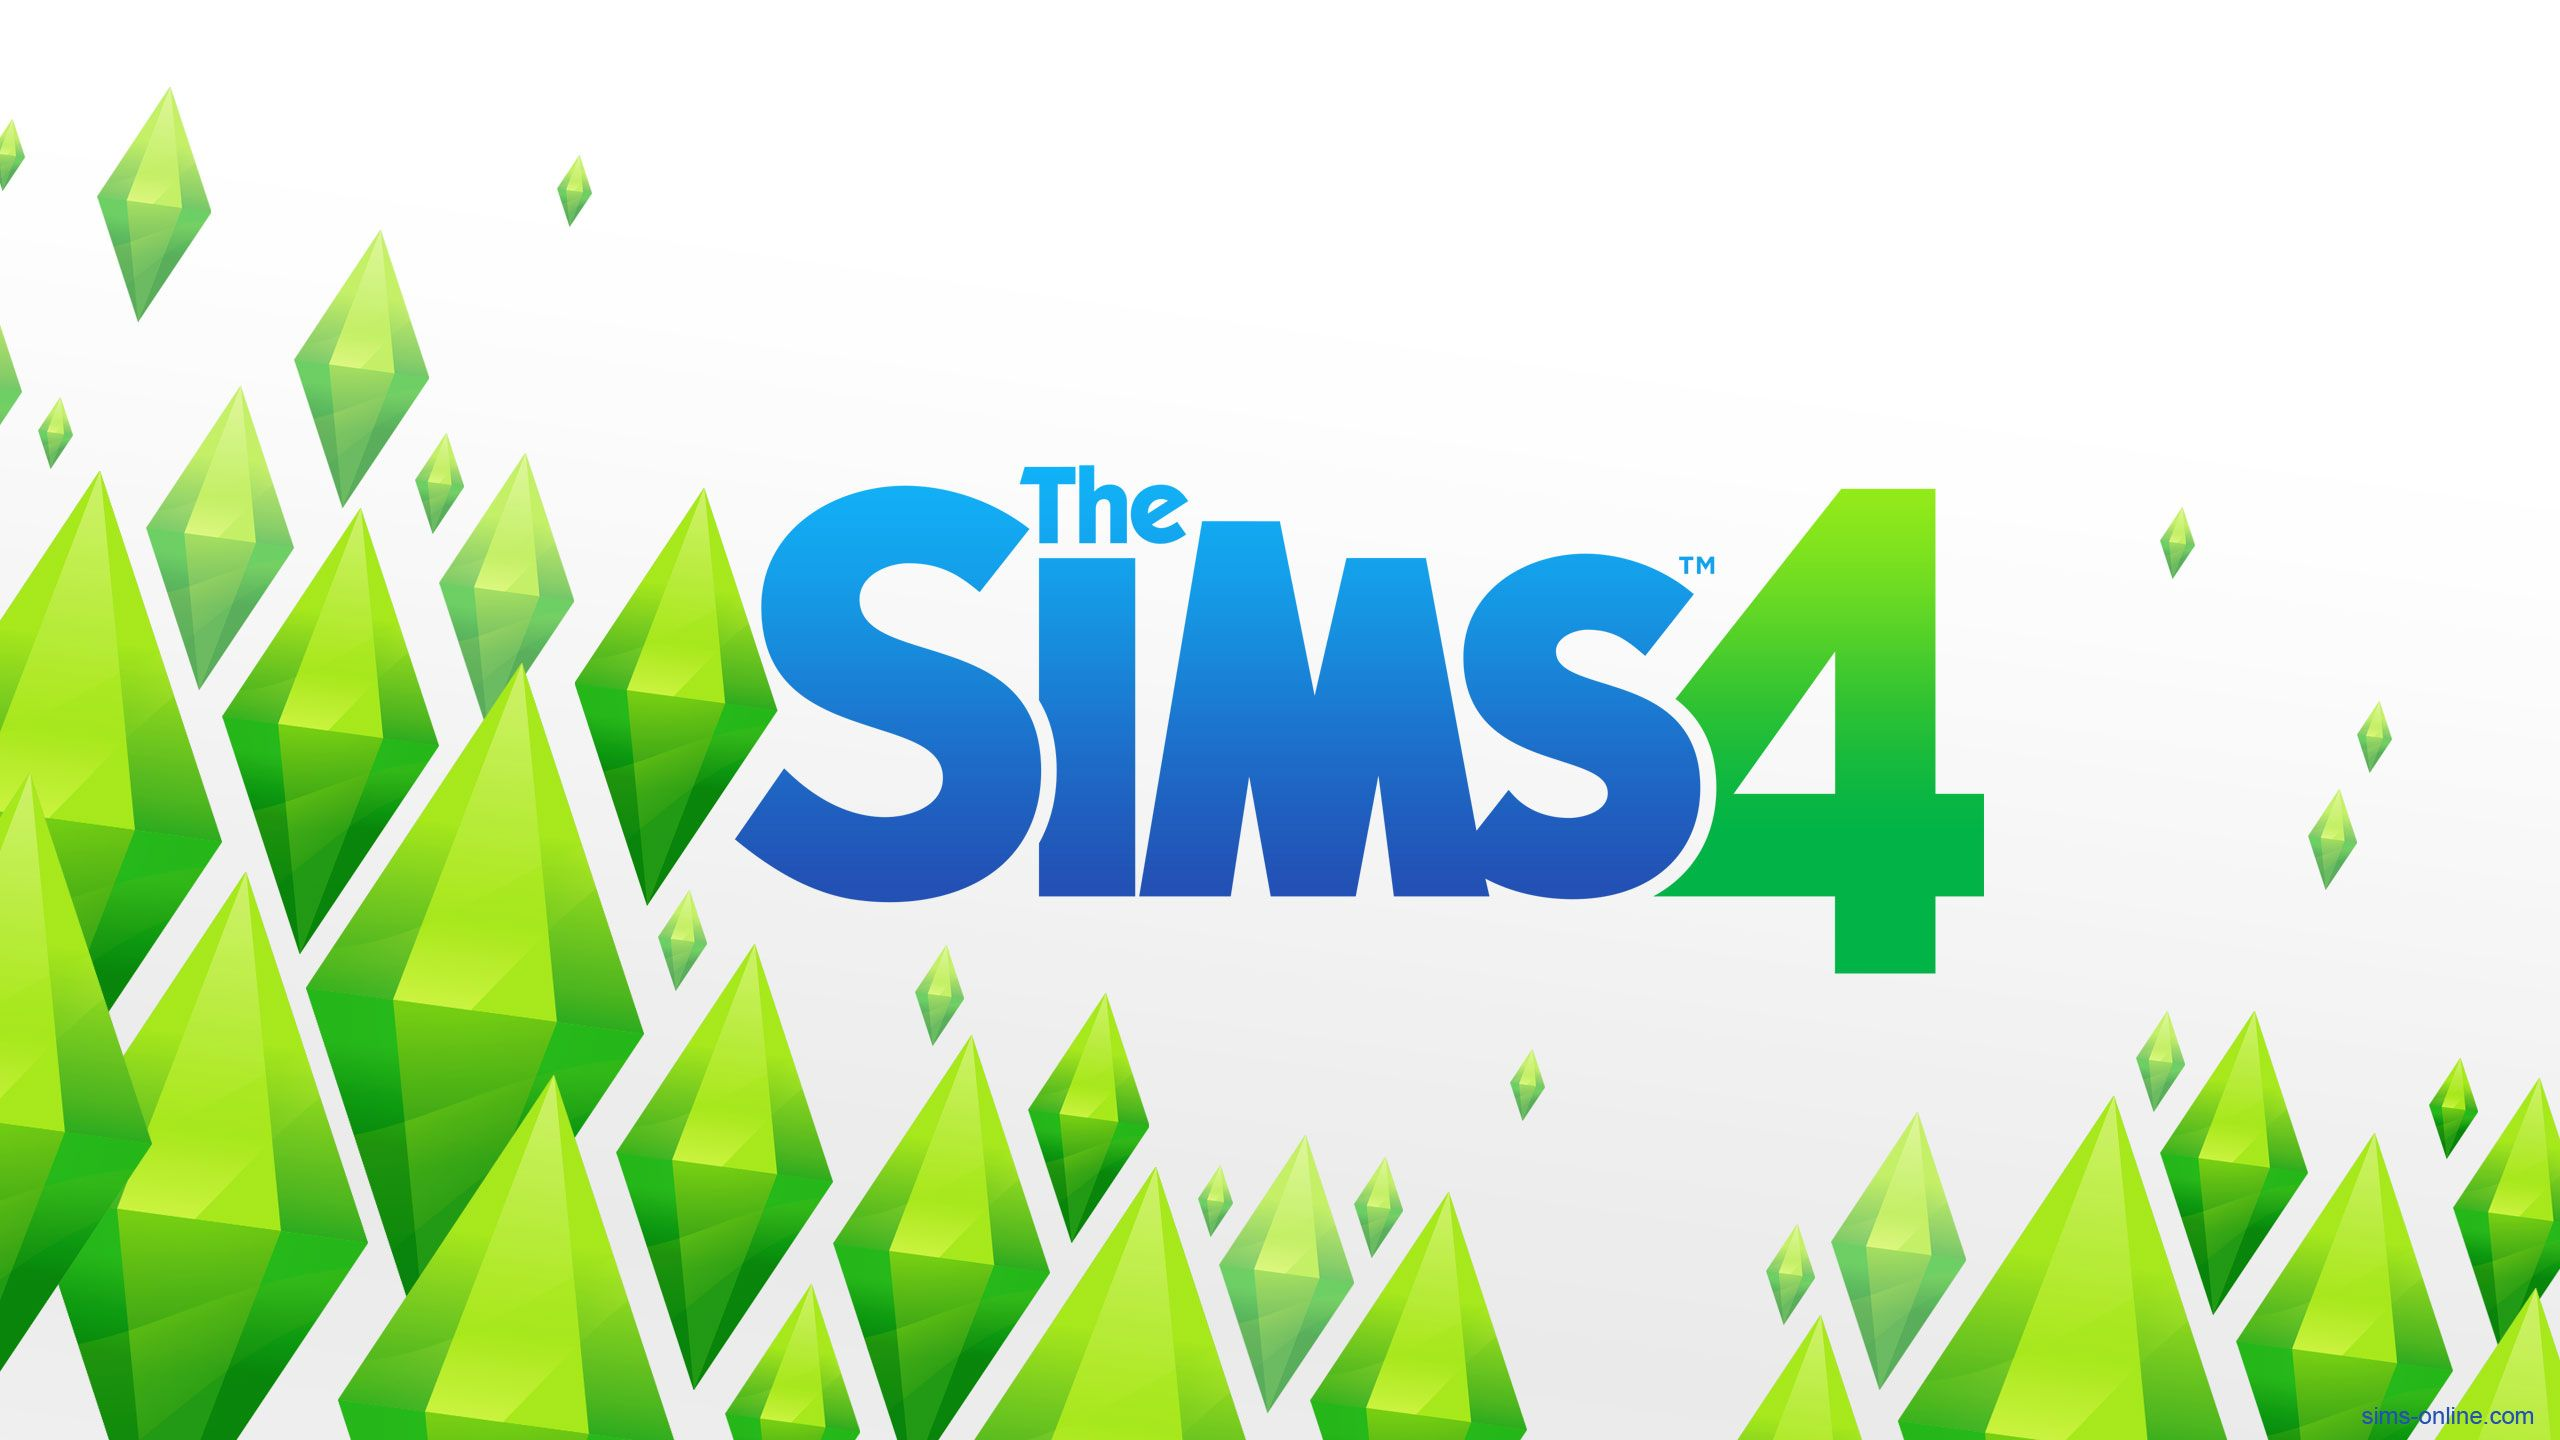 Wallpapers Sims Online Sims Sims 4 Sims Sims 4 Game